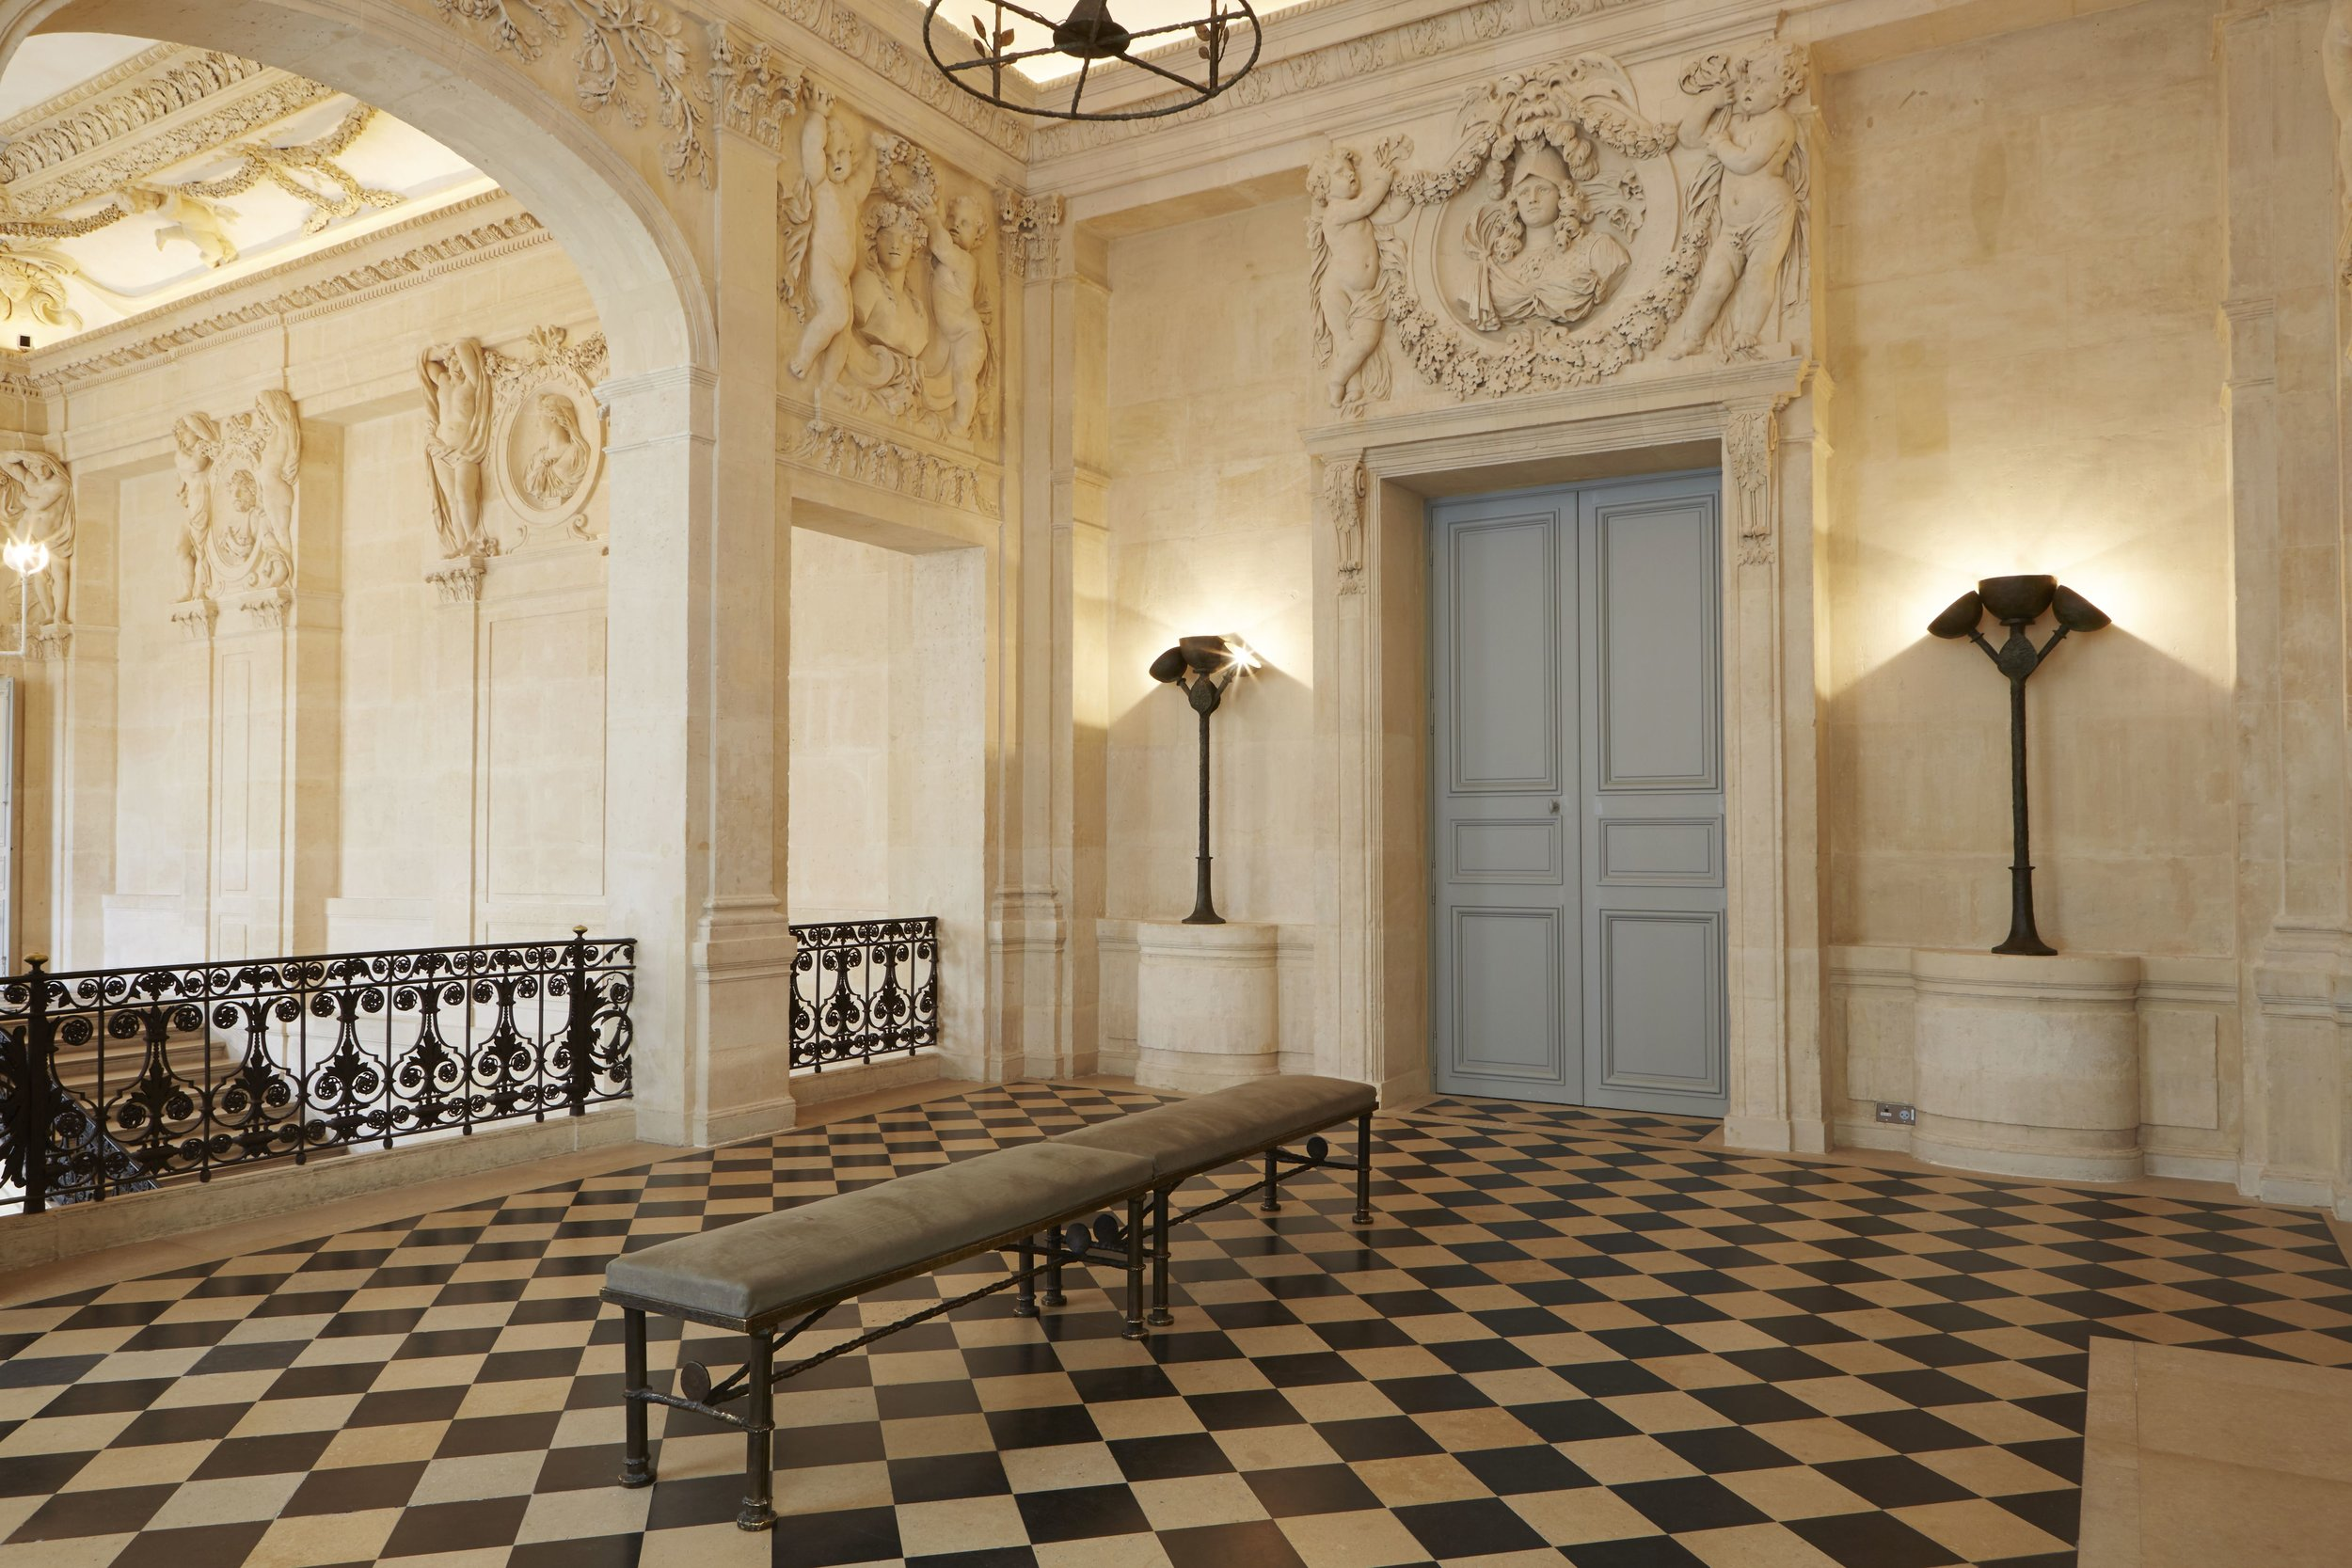 Diego Giacometti's torchères and benches in the Jupiter Salon © Fabien Campoverde